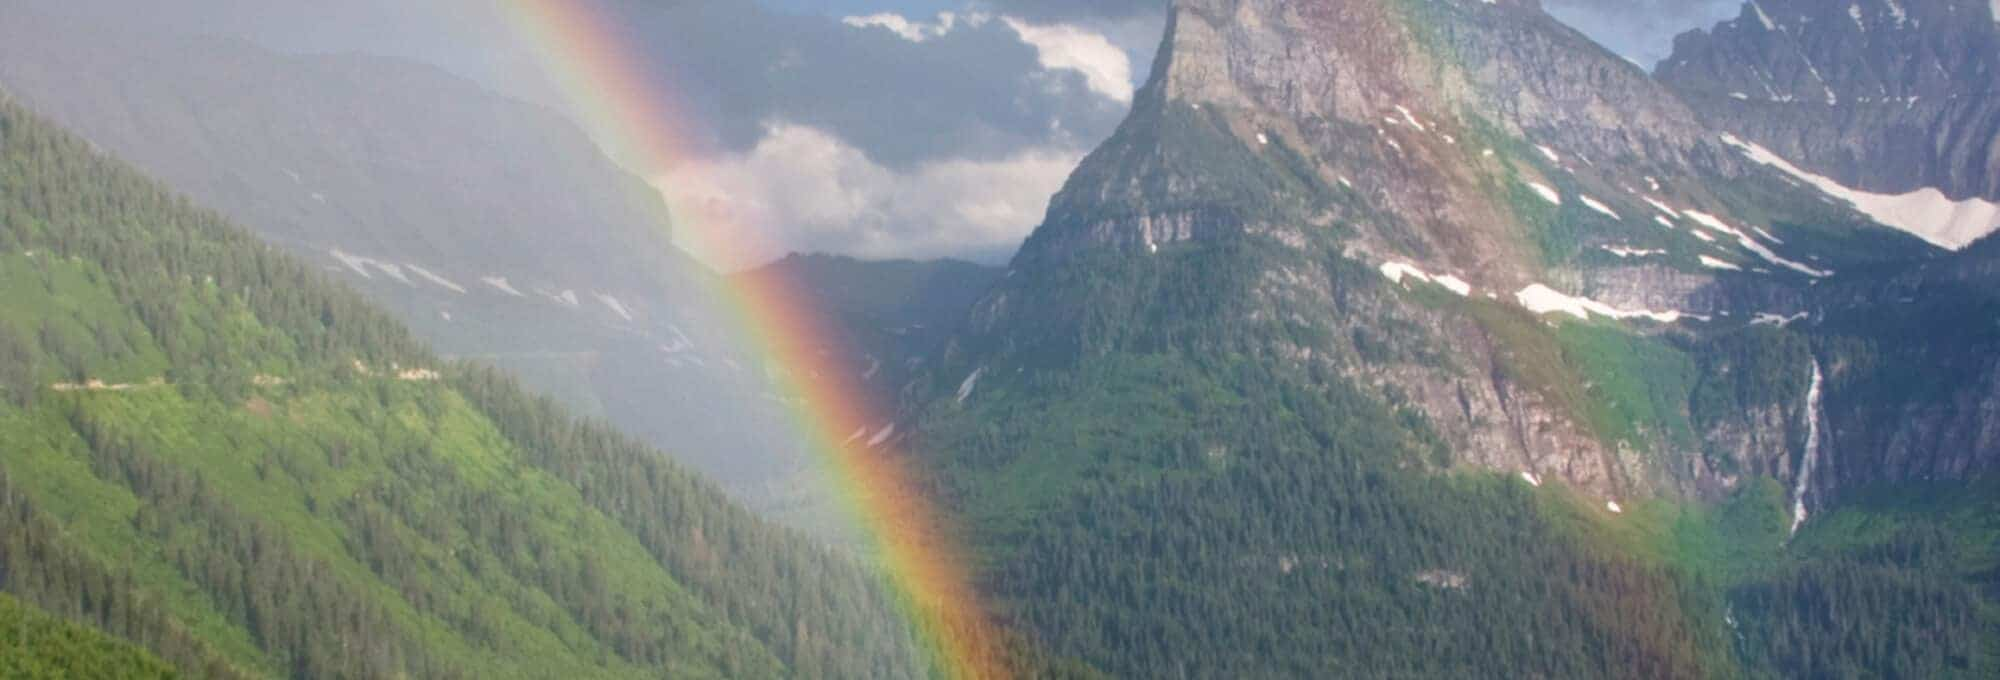 The landscape of the rainbow